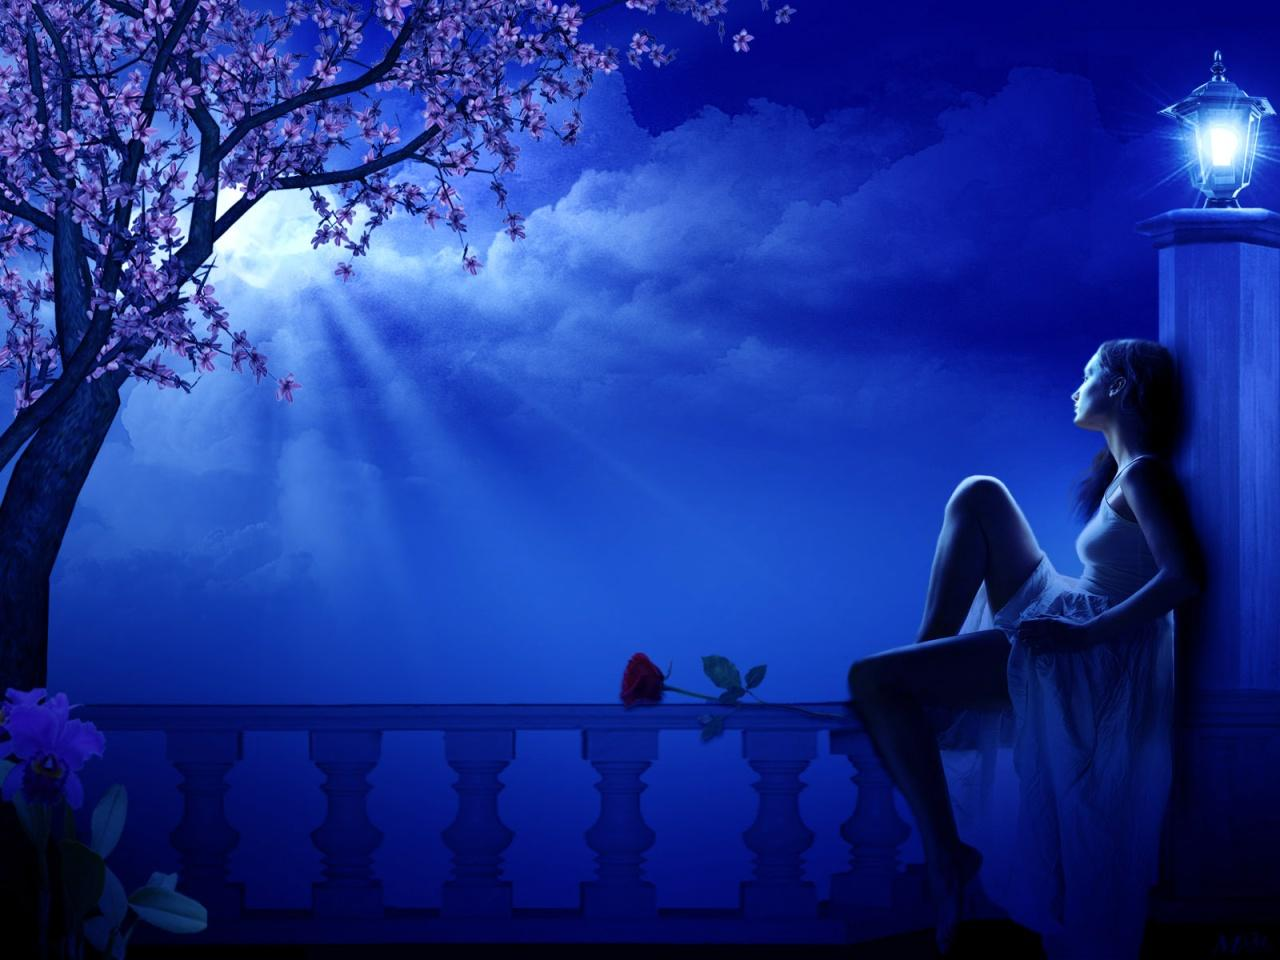 Night, 3d, Art, Blue, Fantasy, Girl, Love, Missing, Moon, Night, Rose Wallpaper